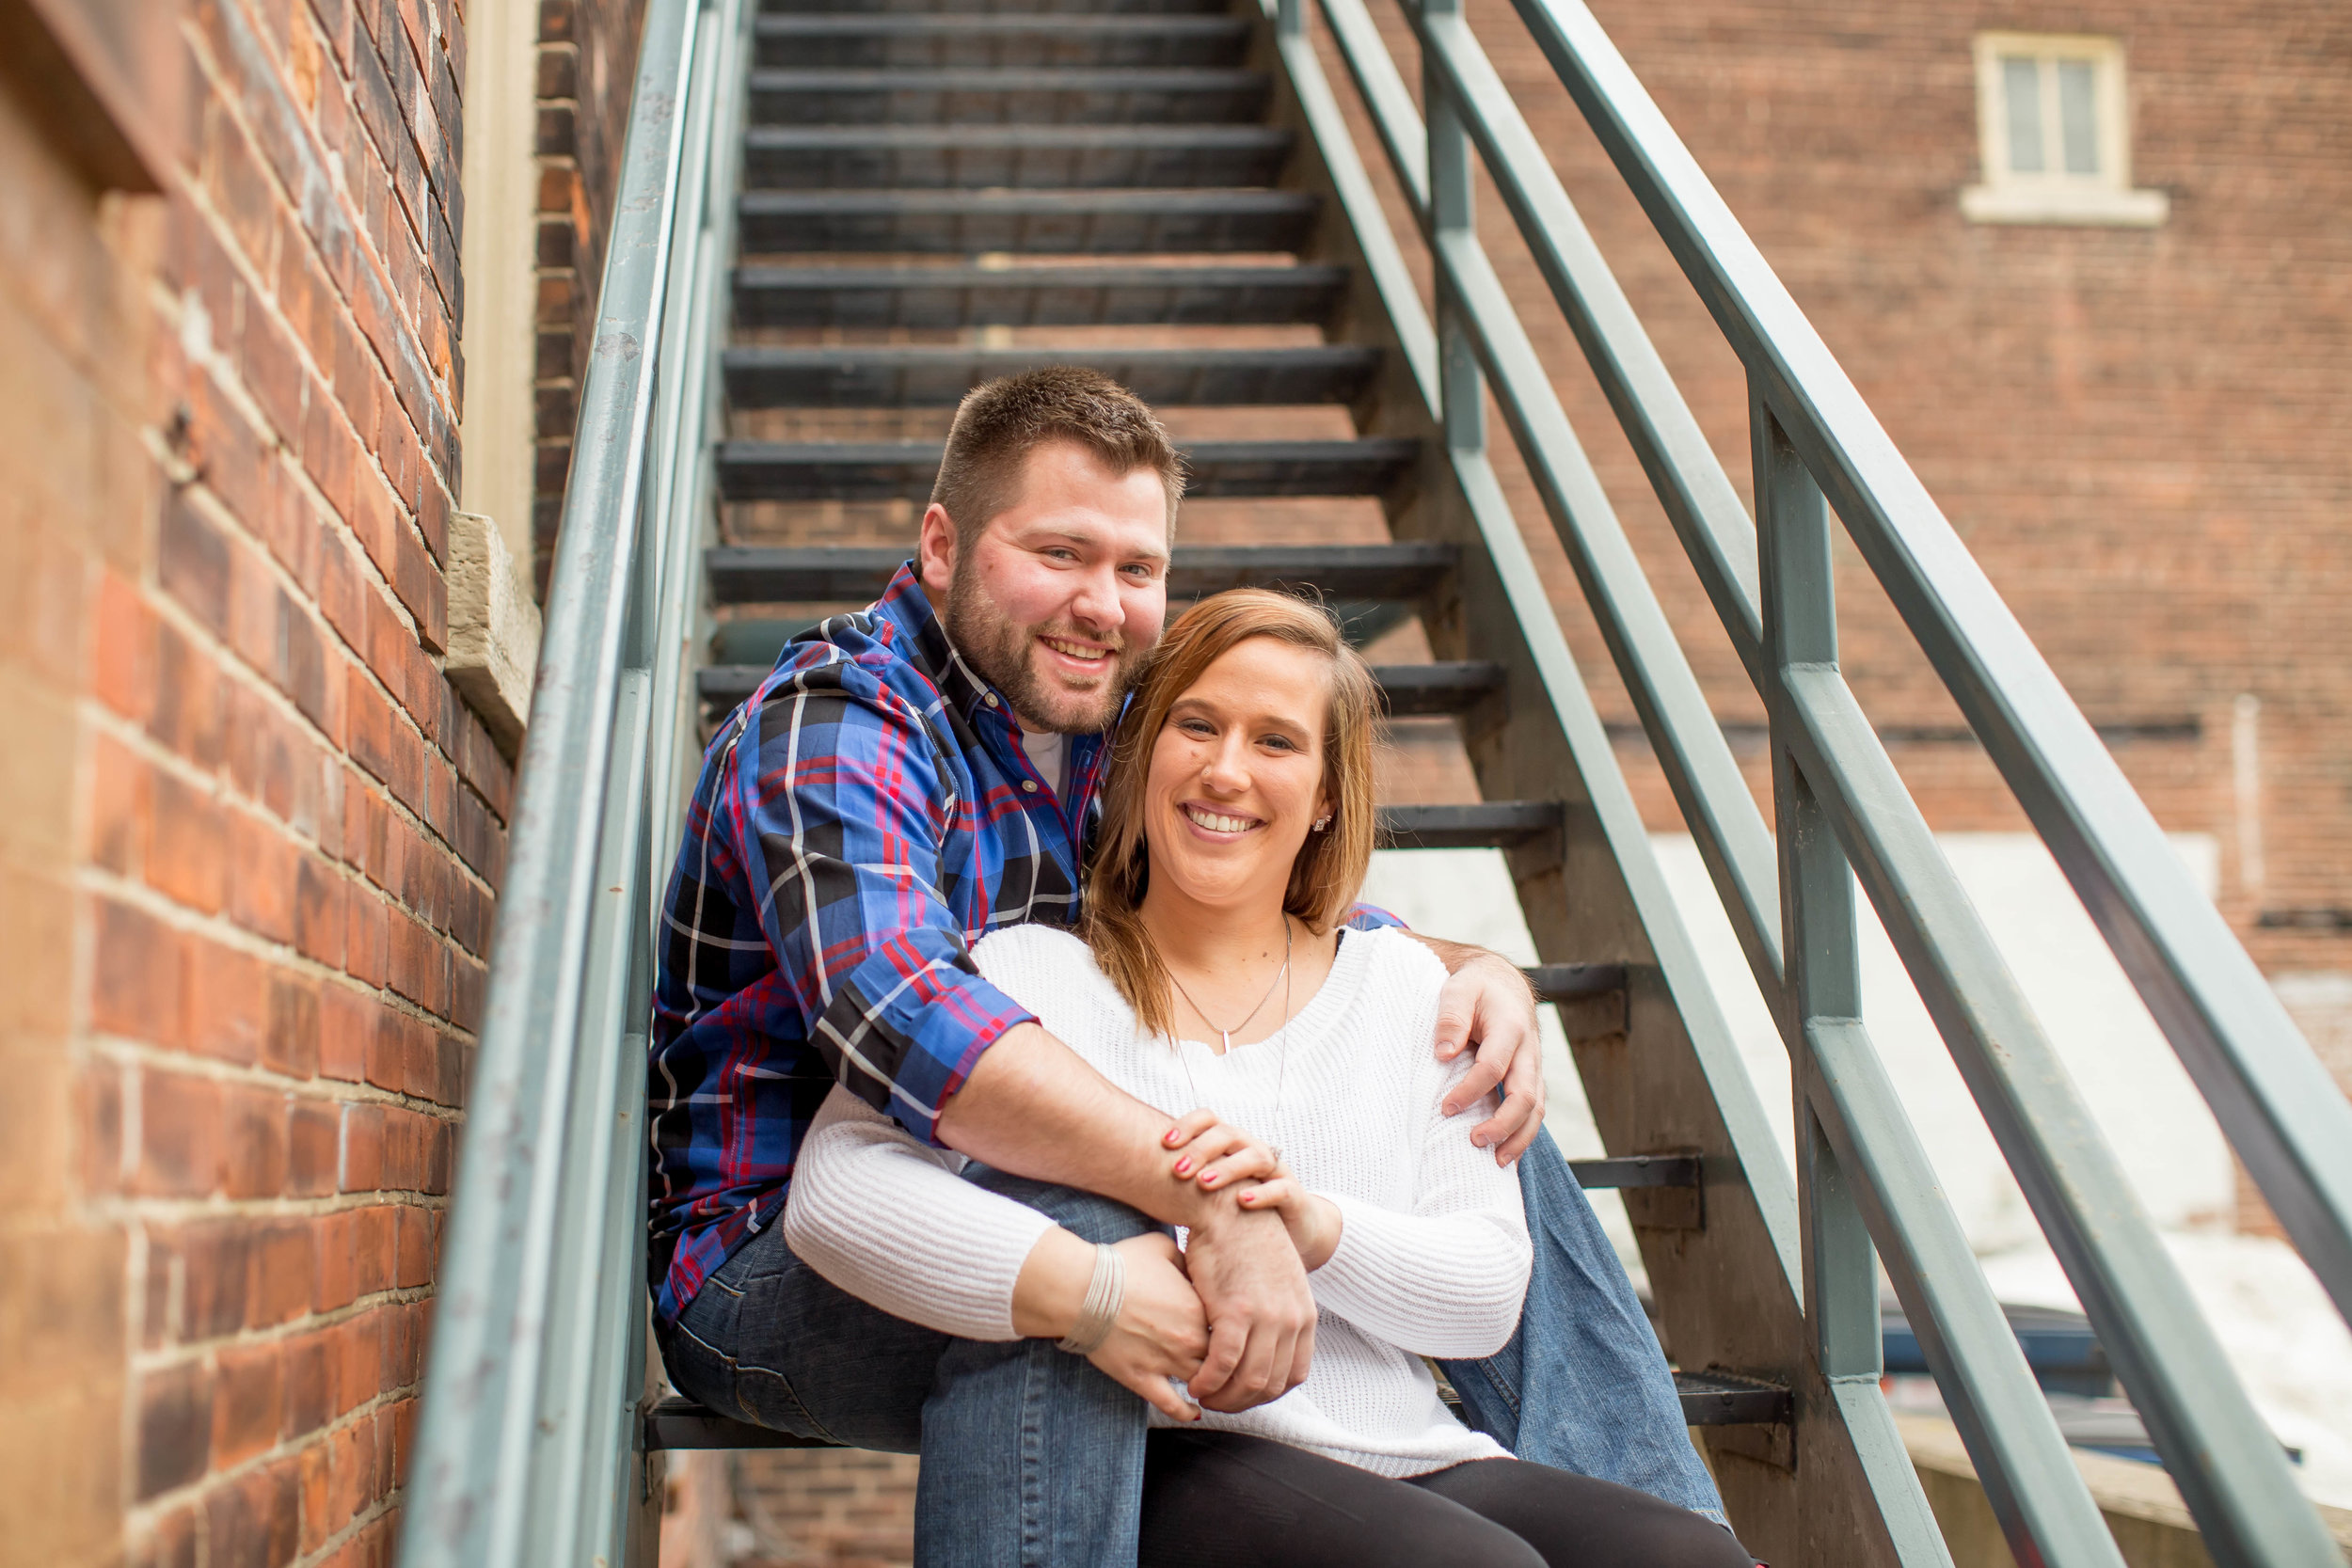 Jessa and Andy Engagement 2017-5529.jpg